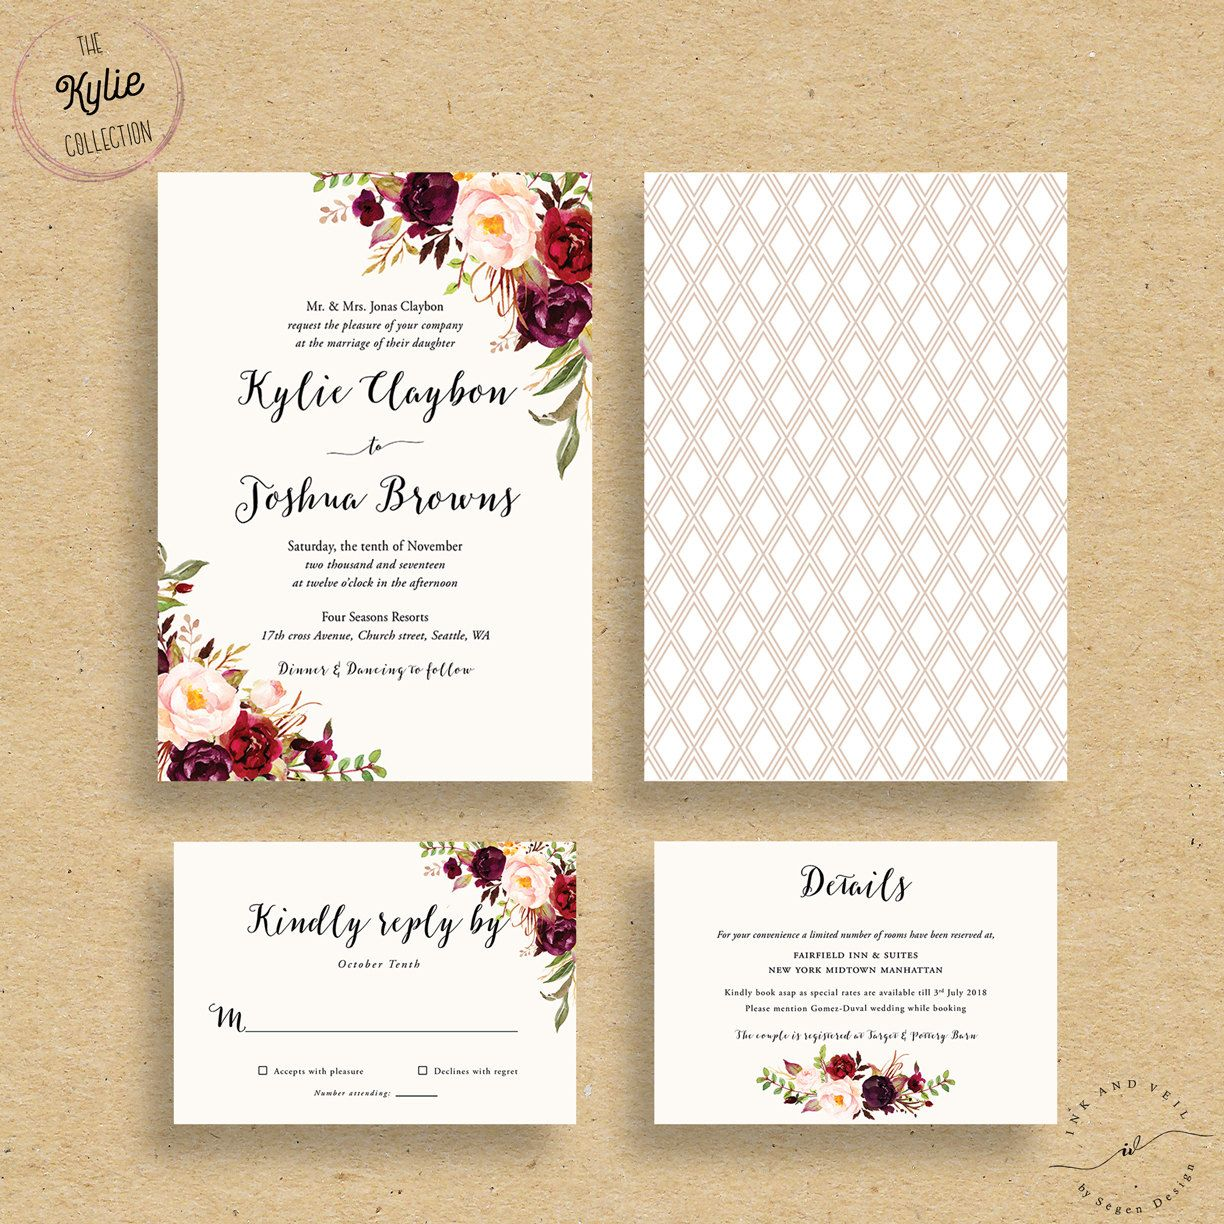 custom wedding invitations The Kylie Collection Impress your future wedding guests with this gorgeous professionally designed CUSTOM WEDDING INVITE SUITE featuring a stunning